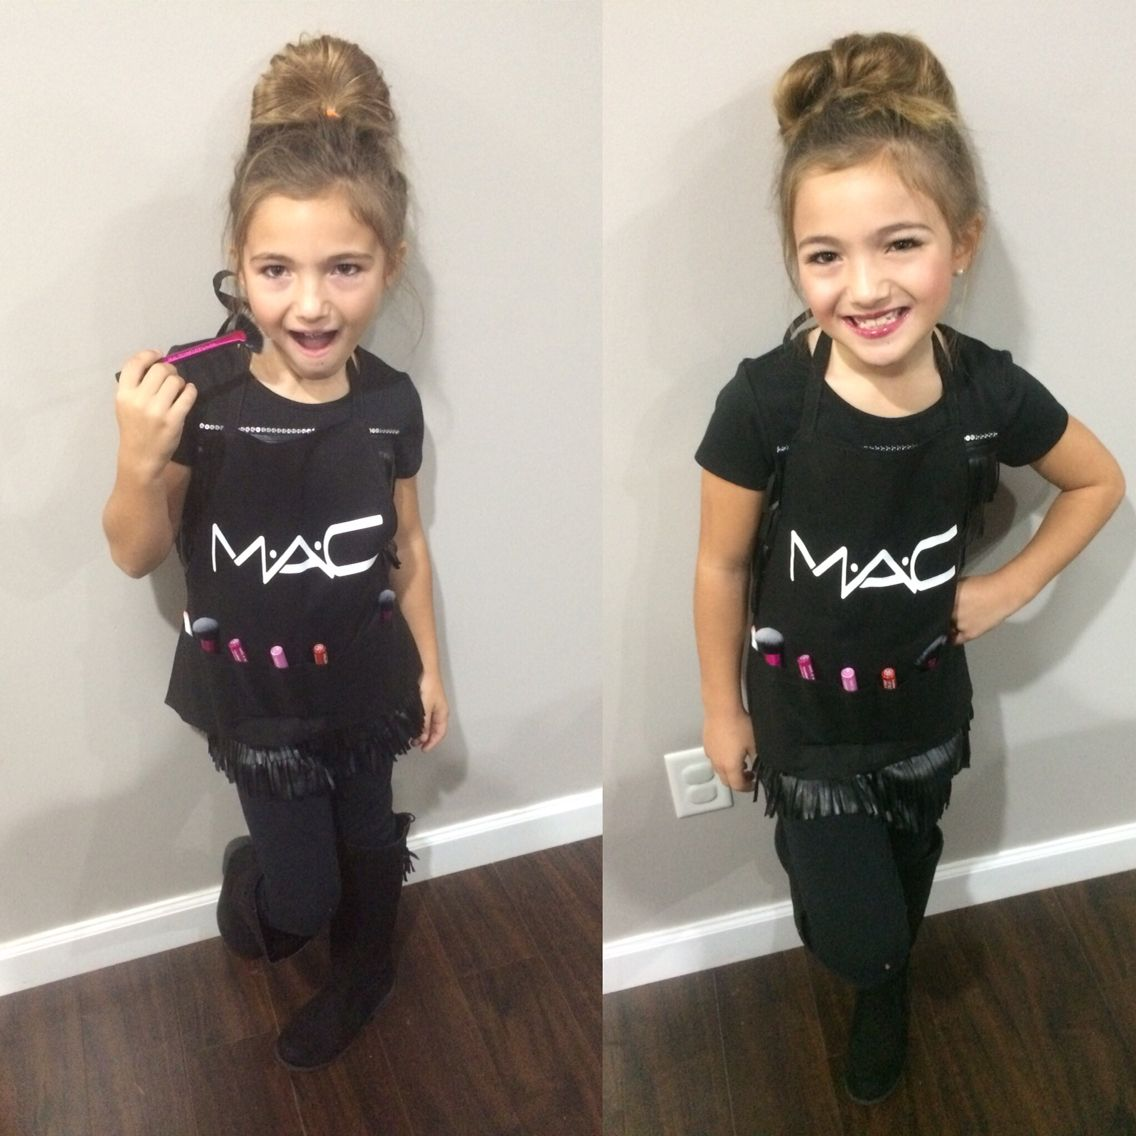 MAC professional makeup artist outfit for career day,school